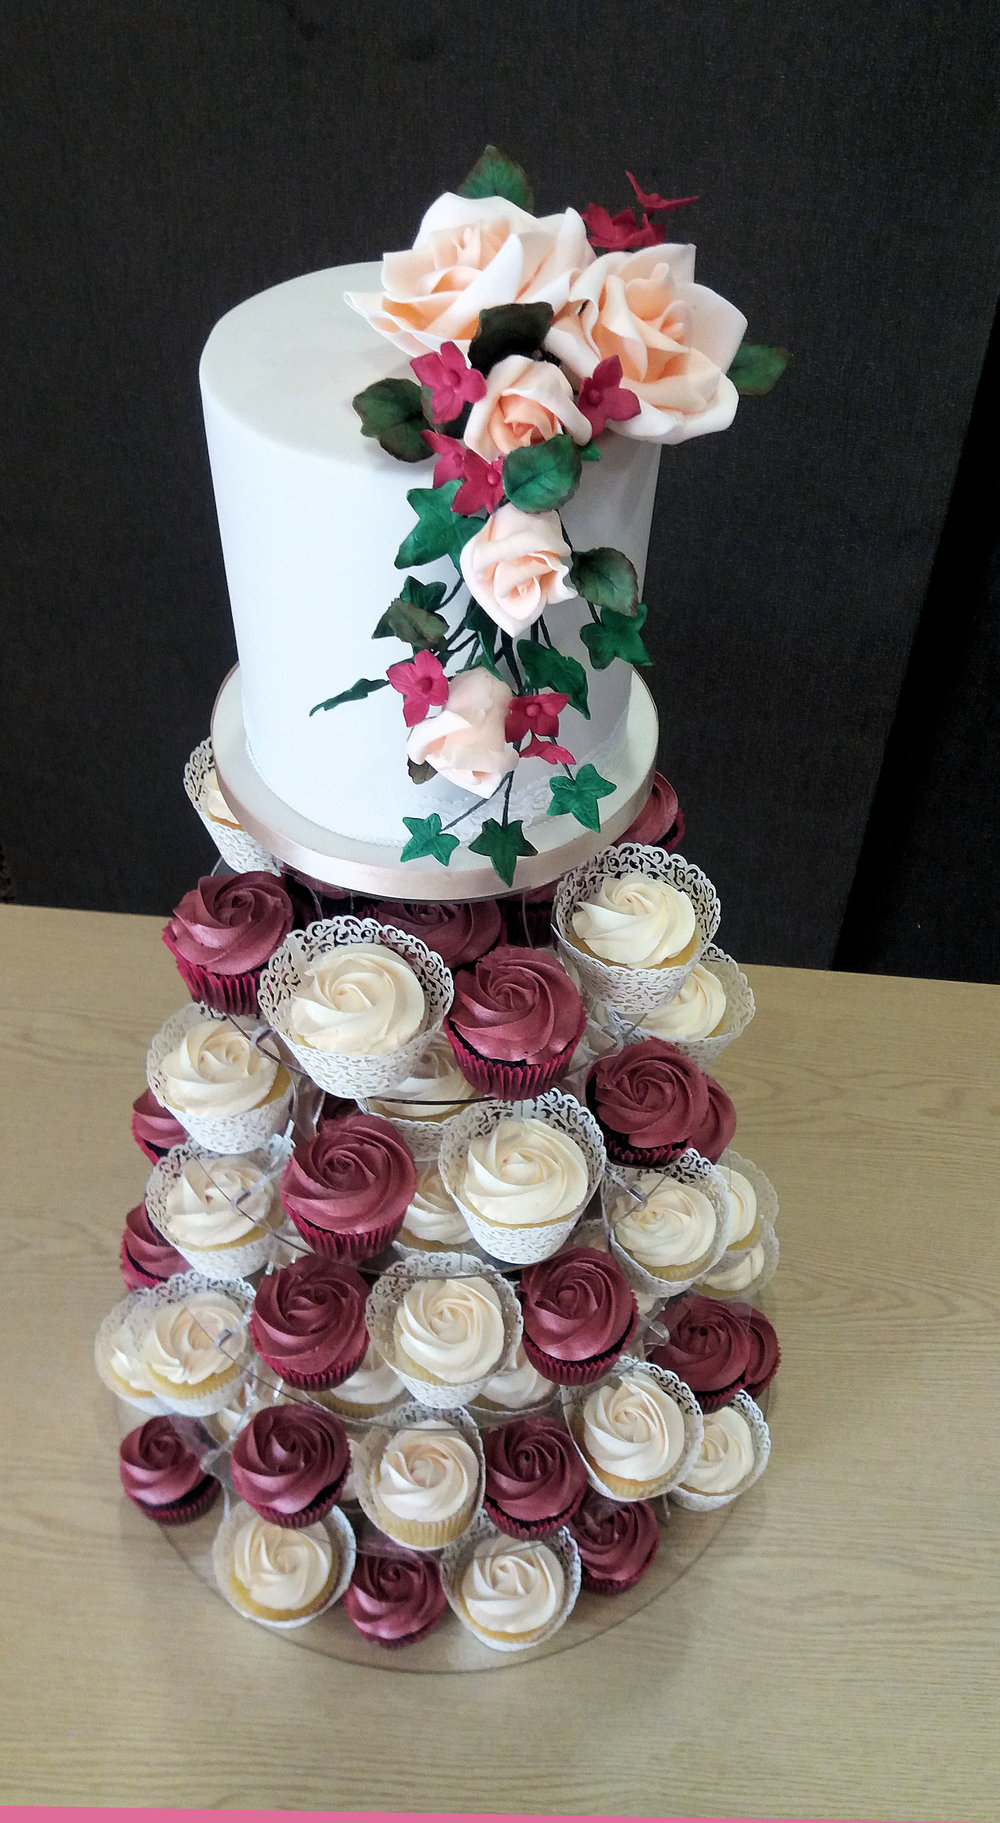 rose wedding cake and cupcake tower 2.jpg